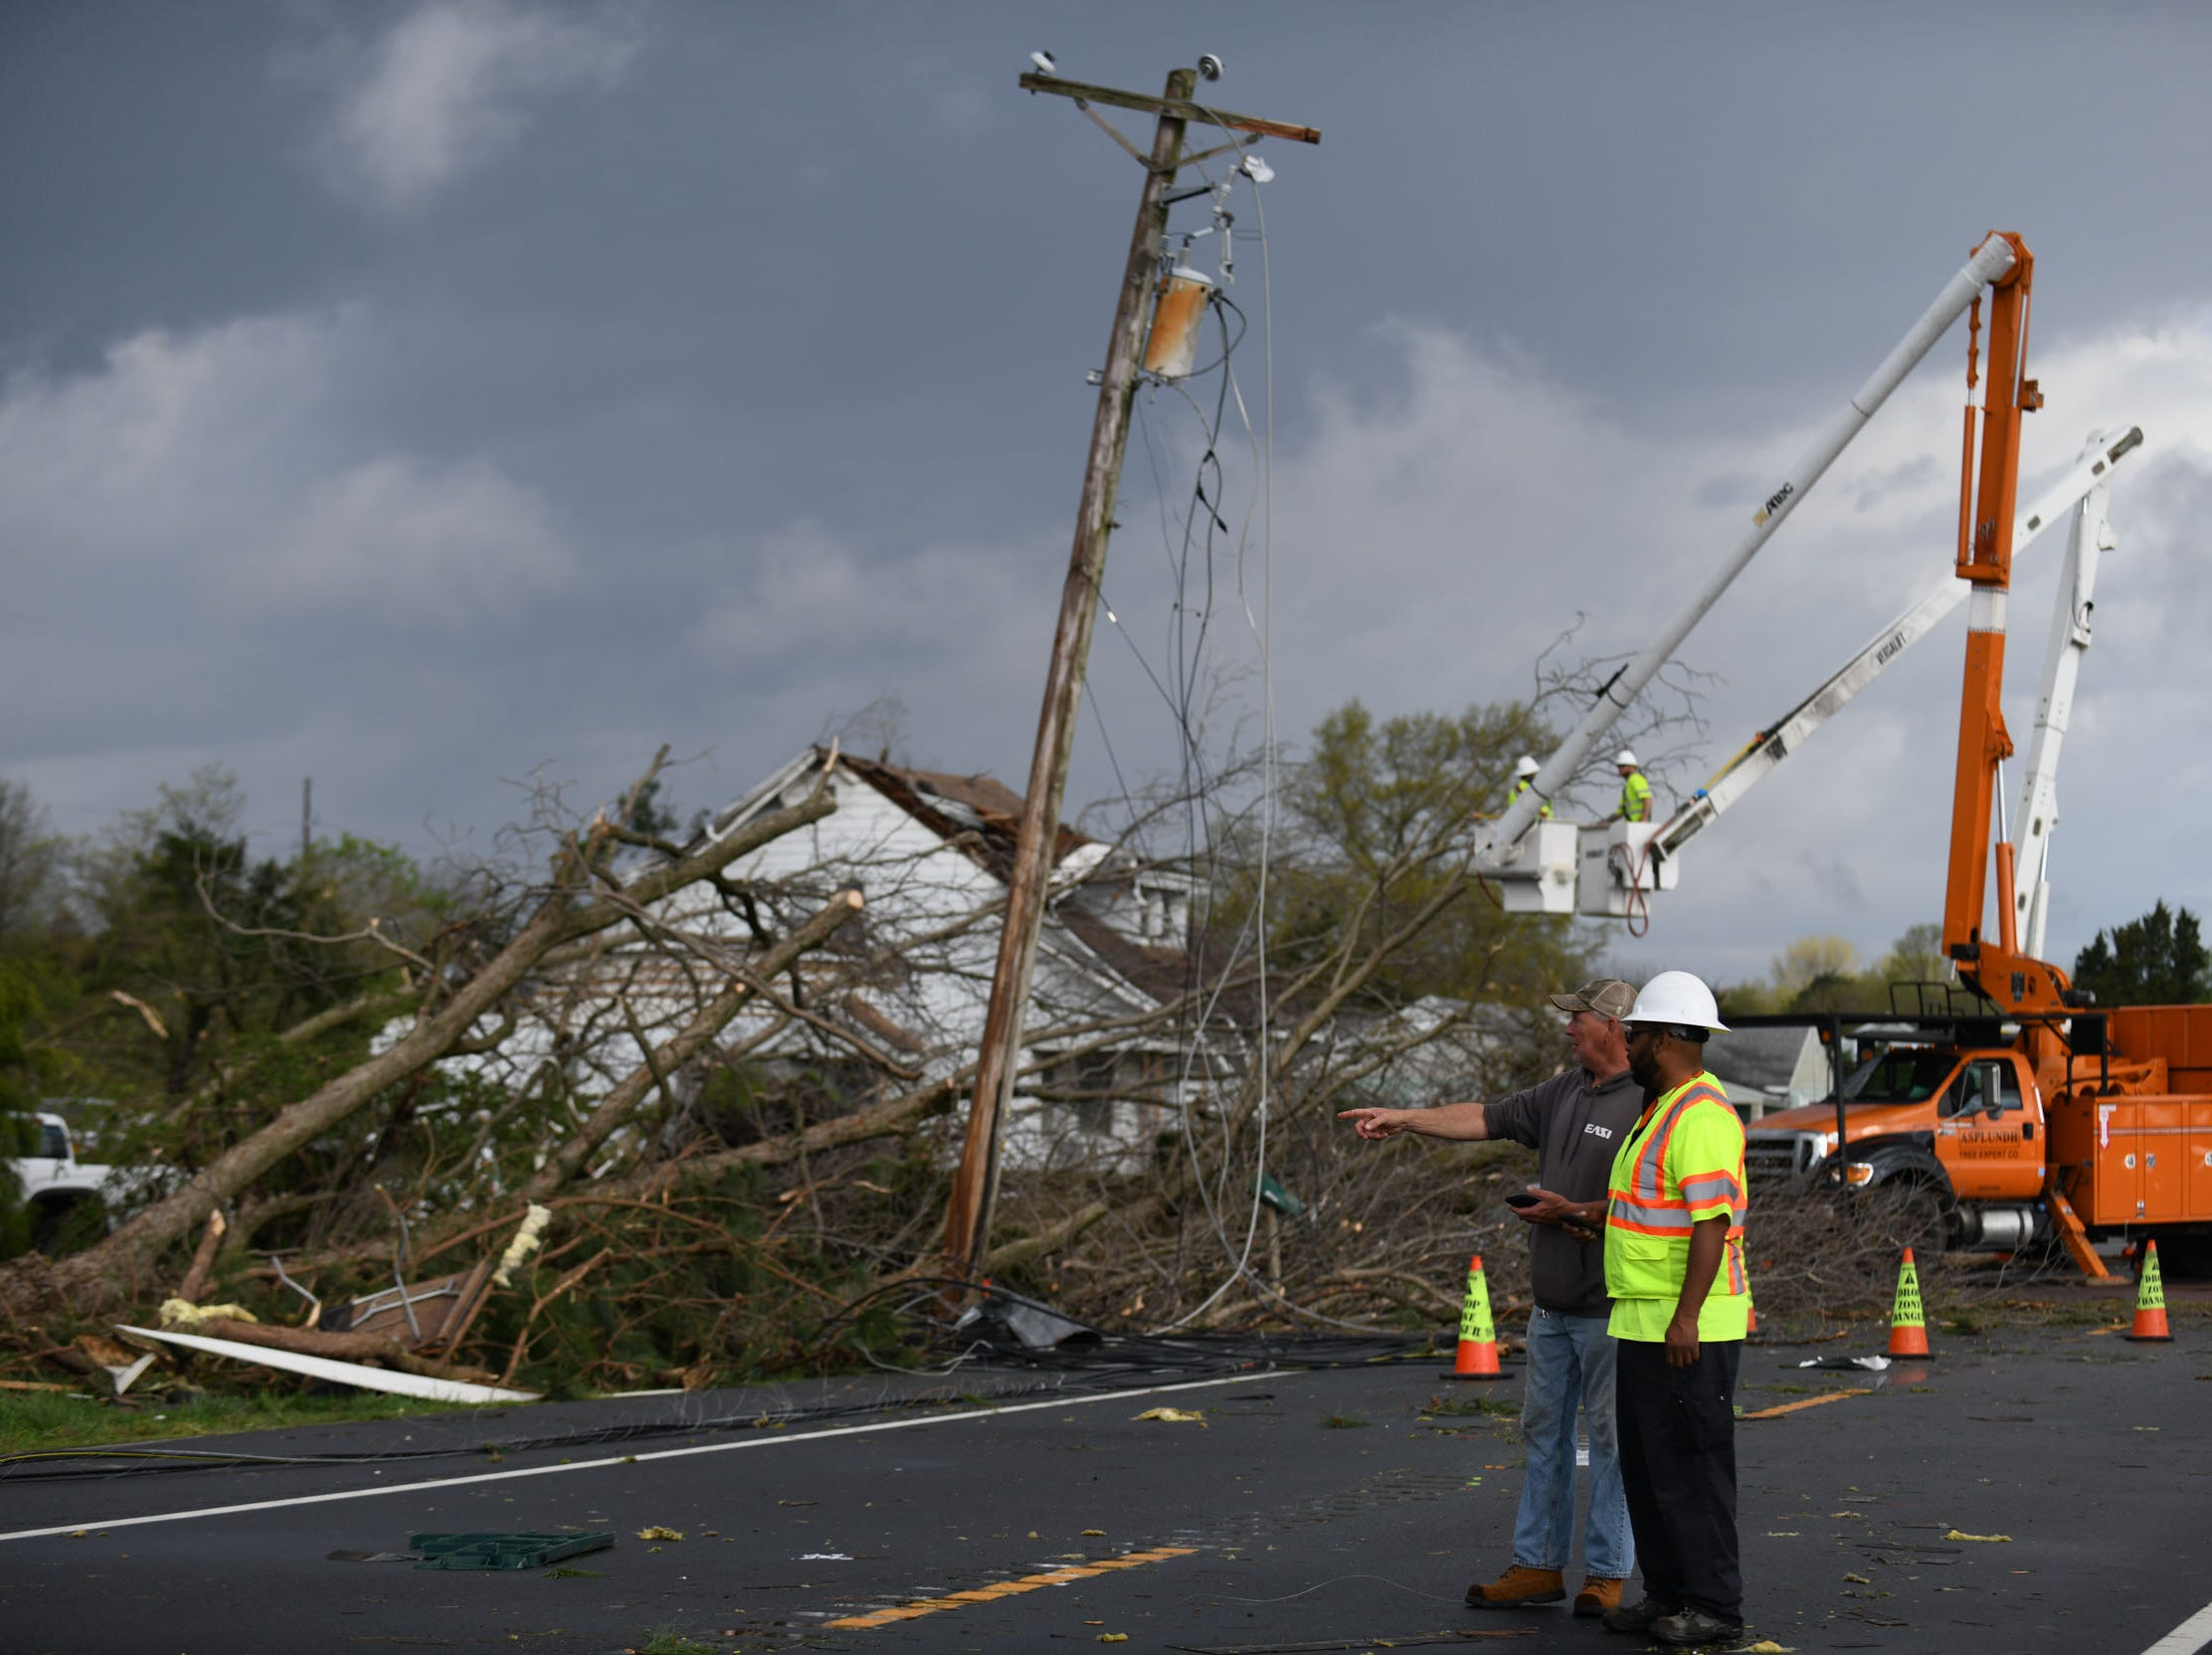 Crews clear downed trees from power lines on Seaford Rd. in Laurel, Del. after a strong band of storms passed through Sussex County on Monday, 15, 2019.